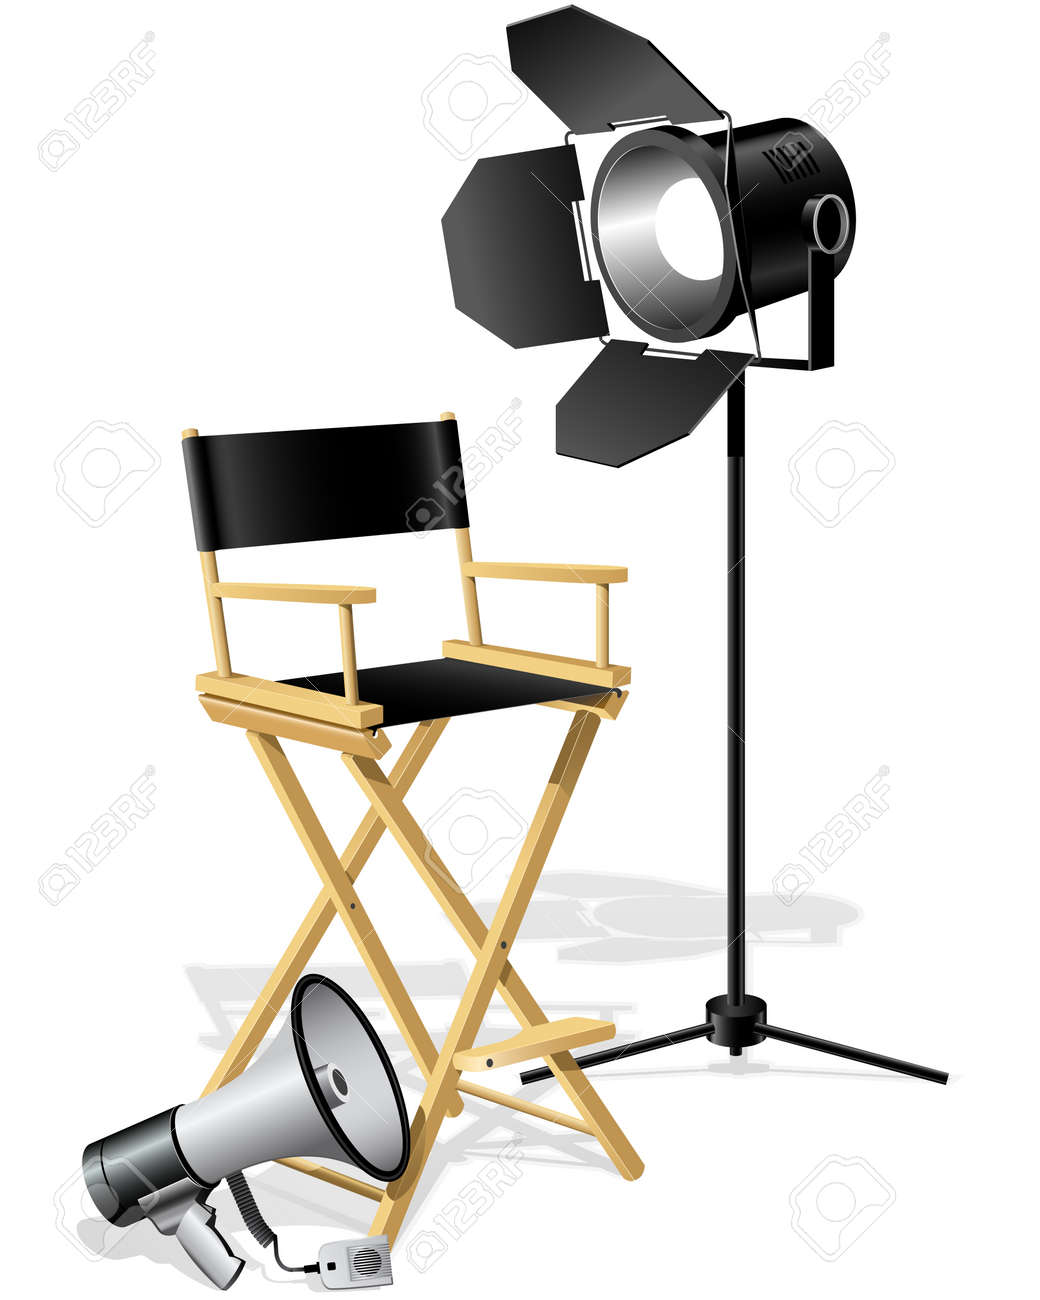 Director's workplace Chair,  Megaphone and searchlight Stock Vector - 6439743